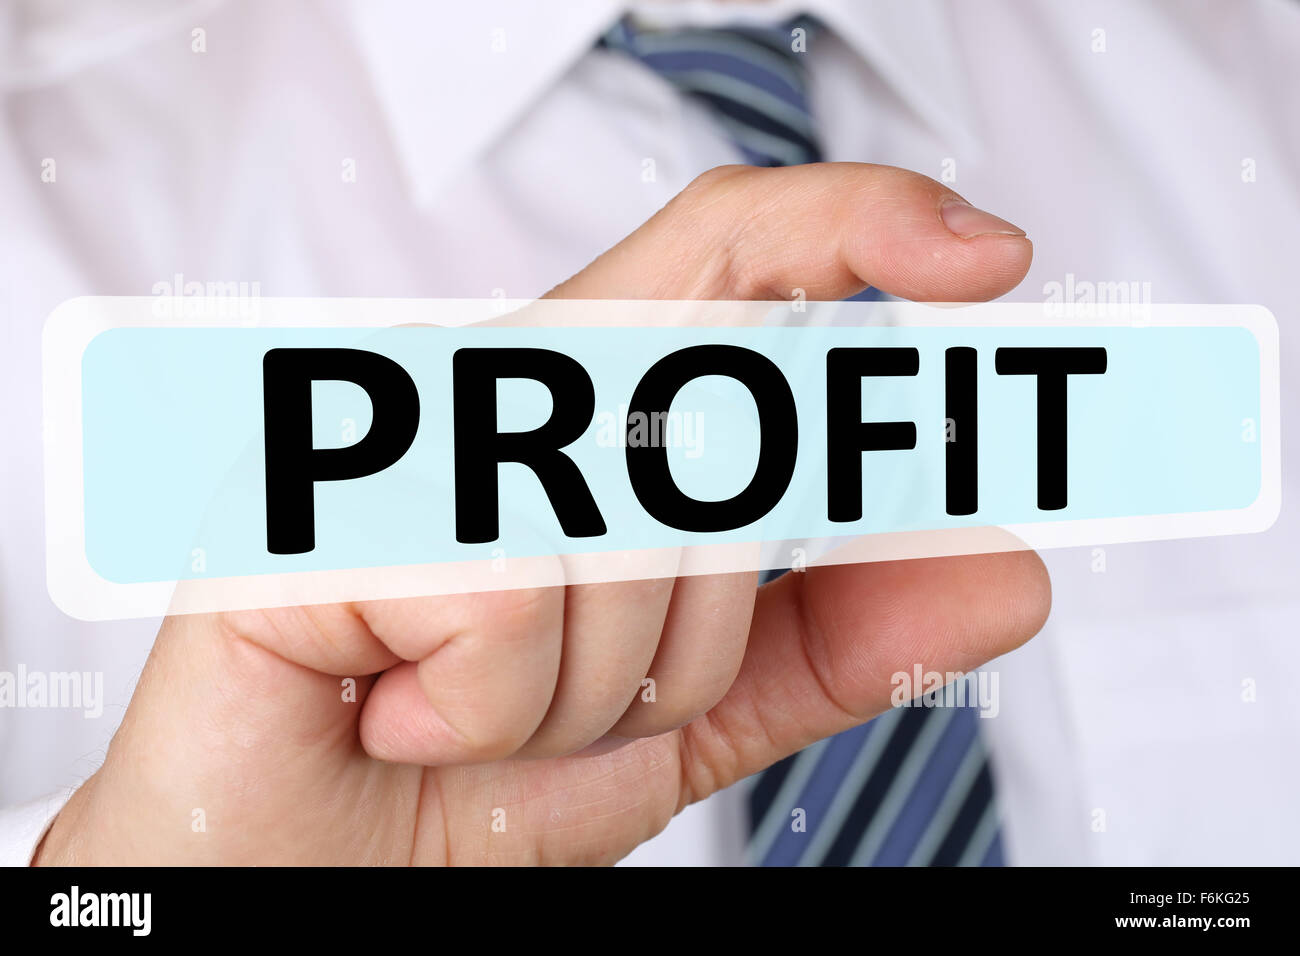 Businessman business concept with profit leadership financial successful success - Stock Image